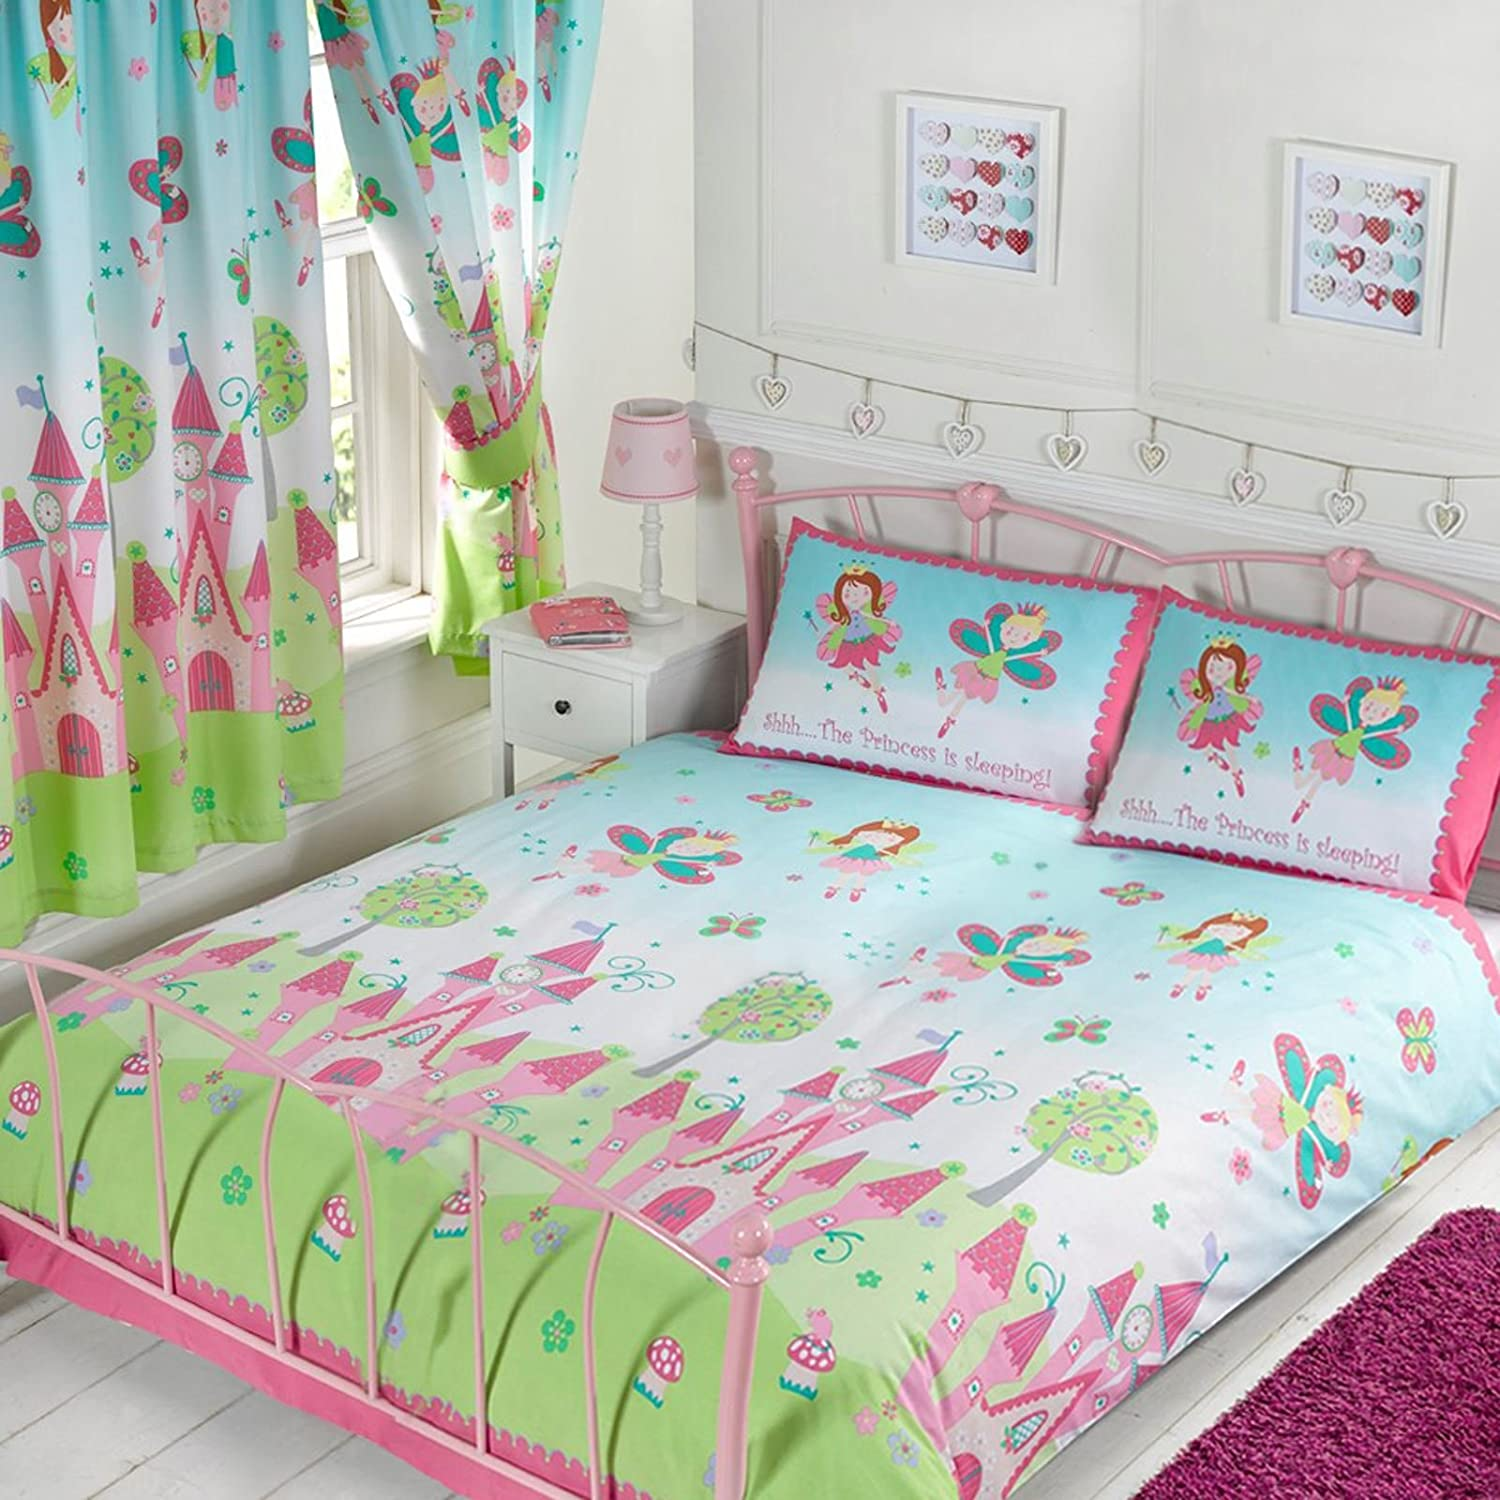 Princess is Sleeping Double Duvet + Matching Fully Lined 72